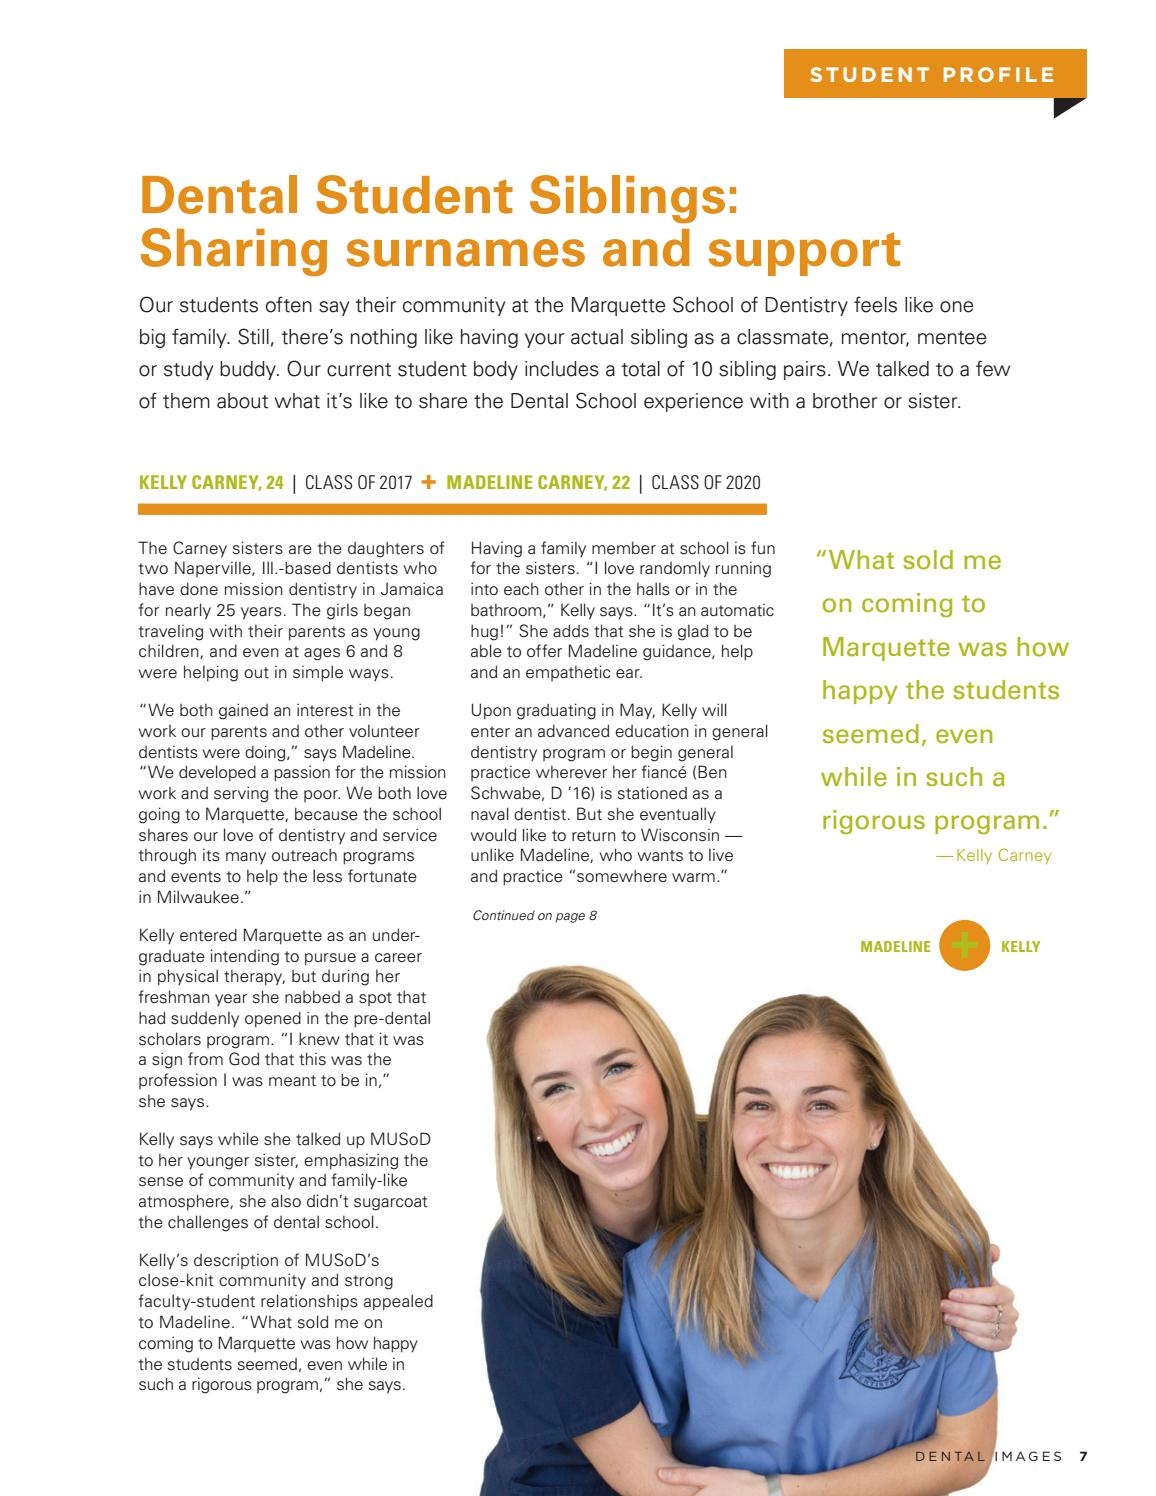 Dental Images Winter 2017 by Marquette University - issuu